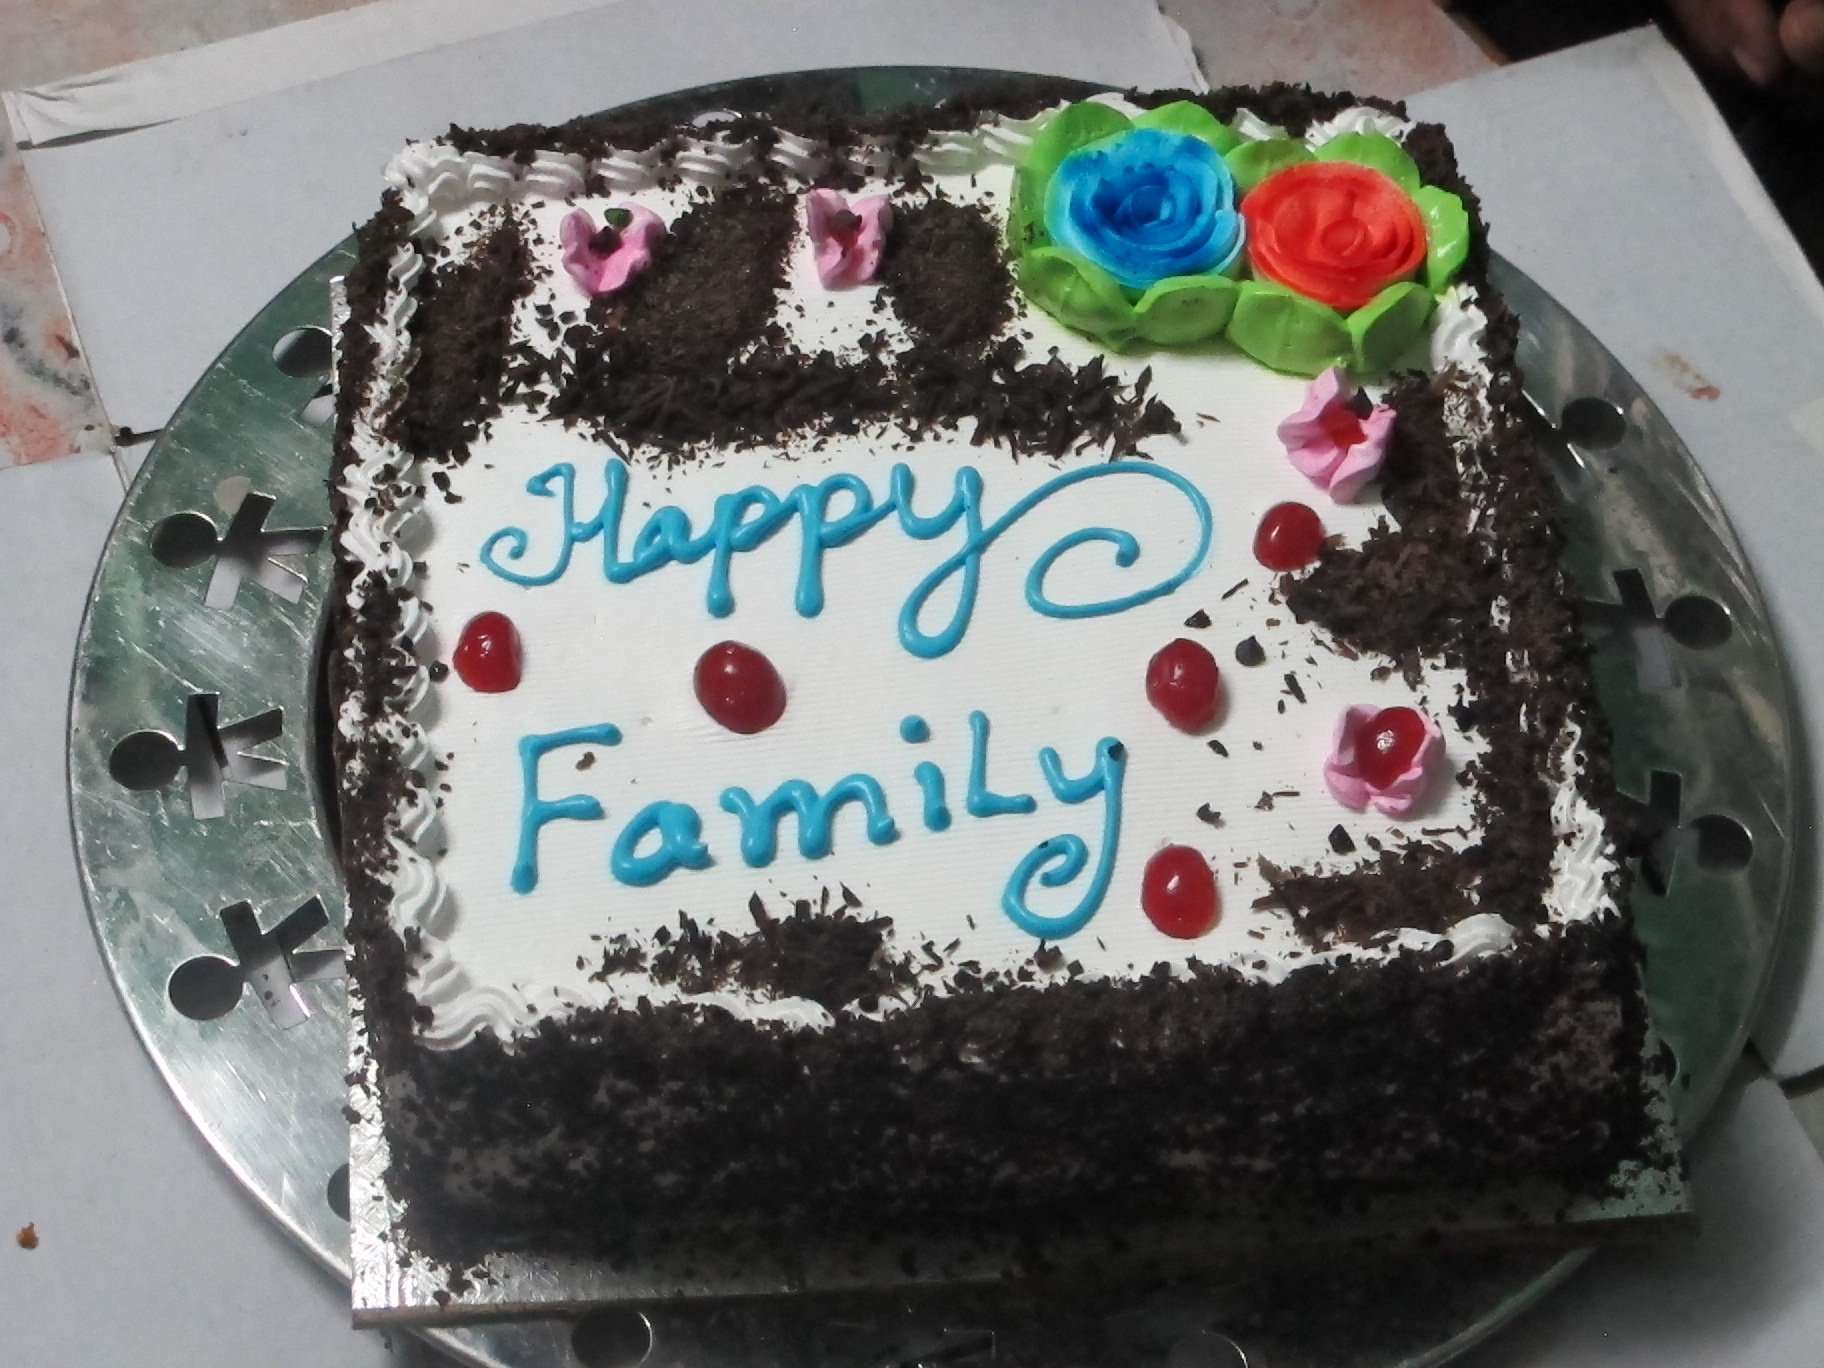 With all children and adults birthday for all will be celebrated at the end of my stay.